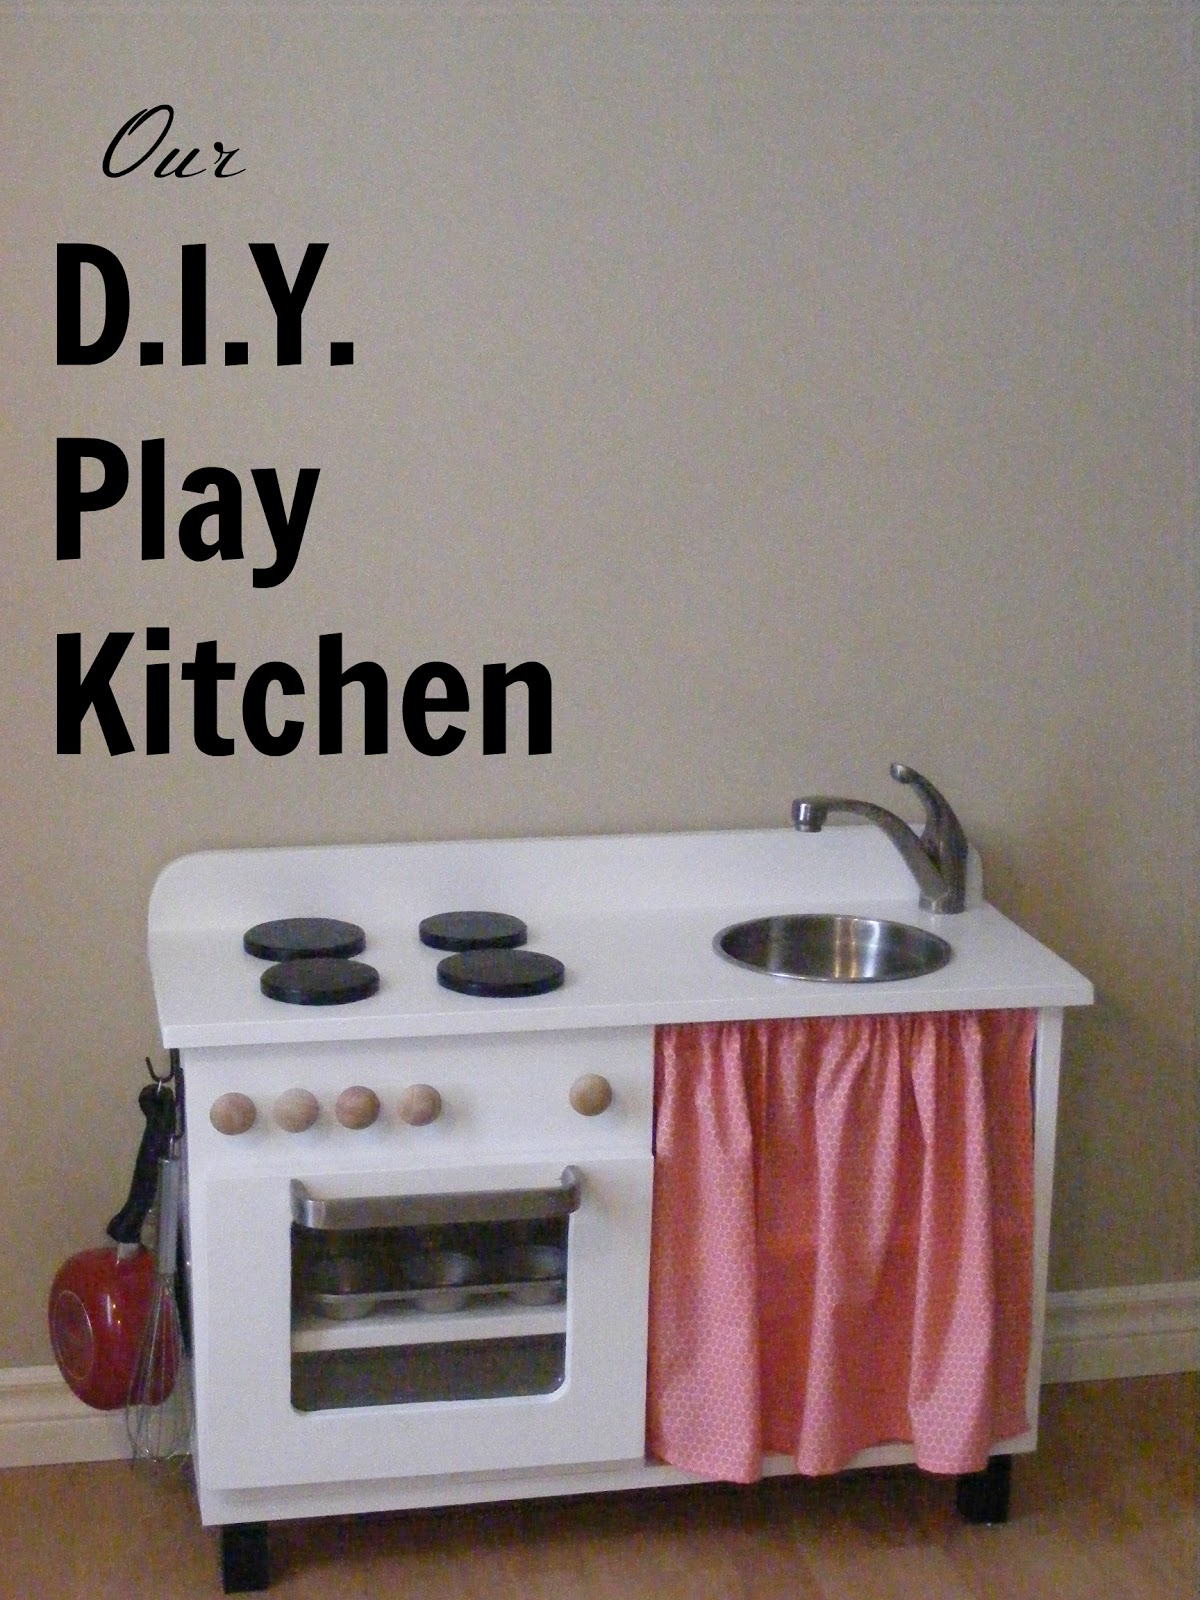 Wooden Play Kitchen Plans the complete guide to imperfect homemaking: our diy play kitchen